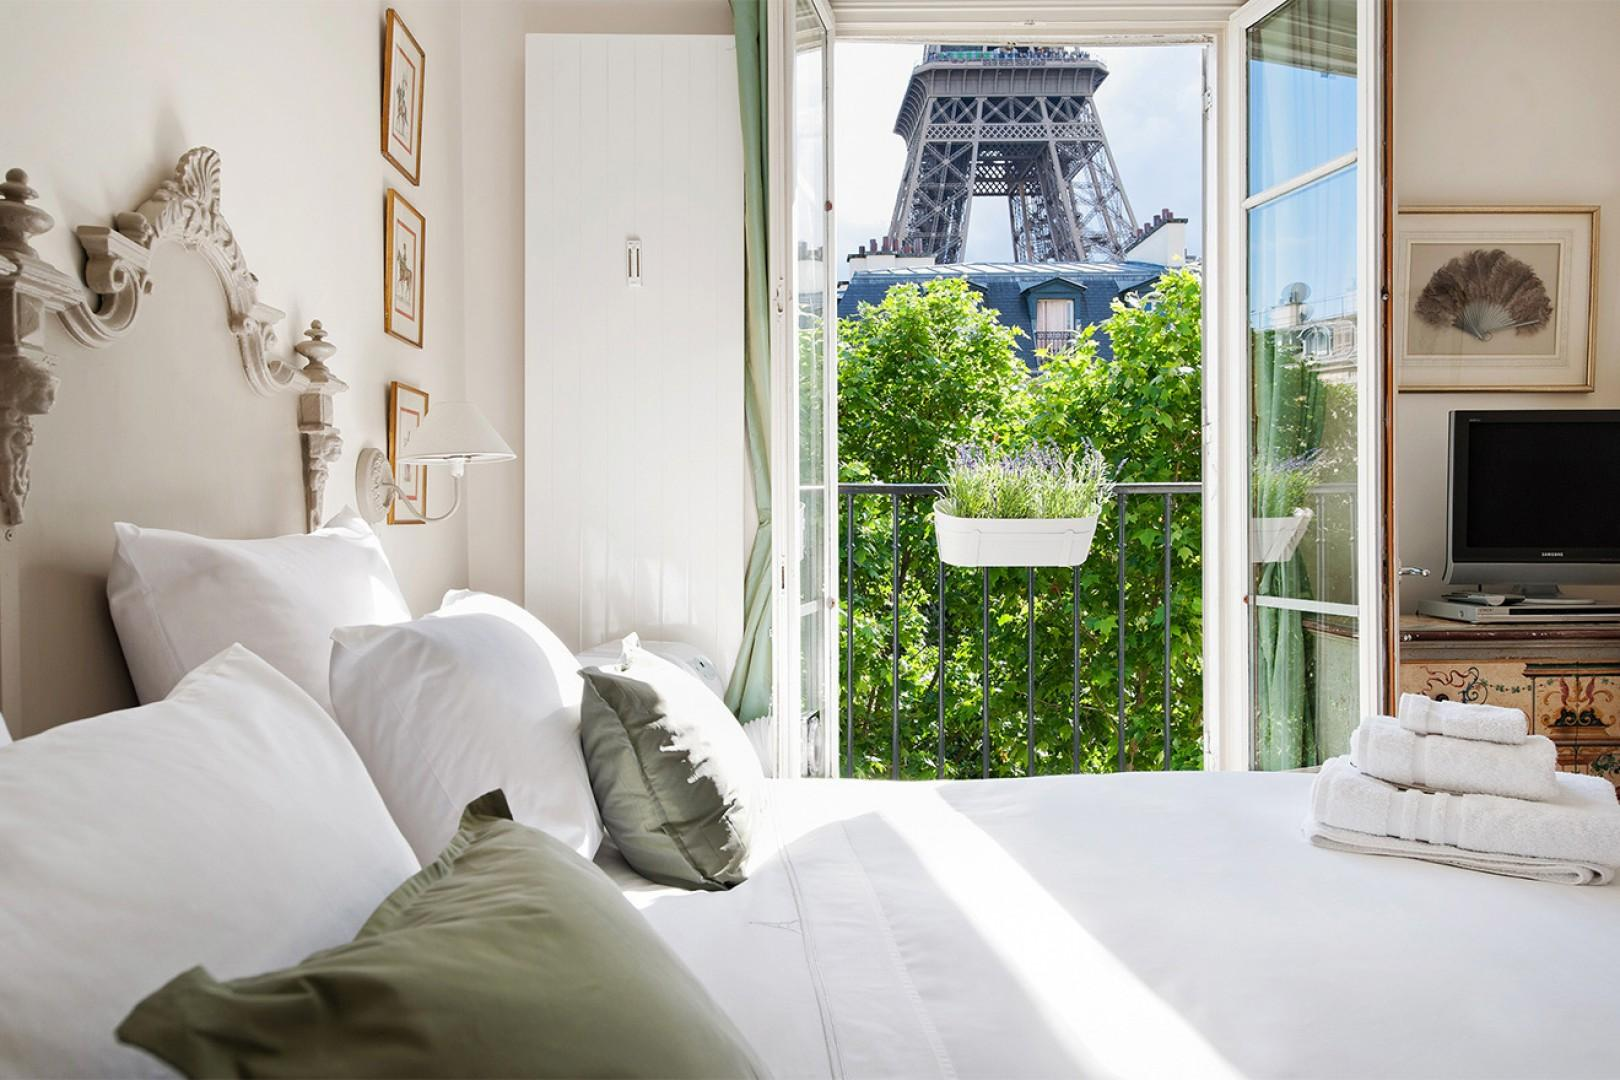 Say bonjour to the Eiffel Tower from bedroom 1!